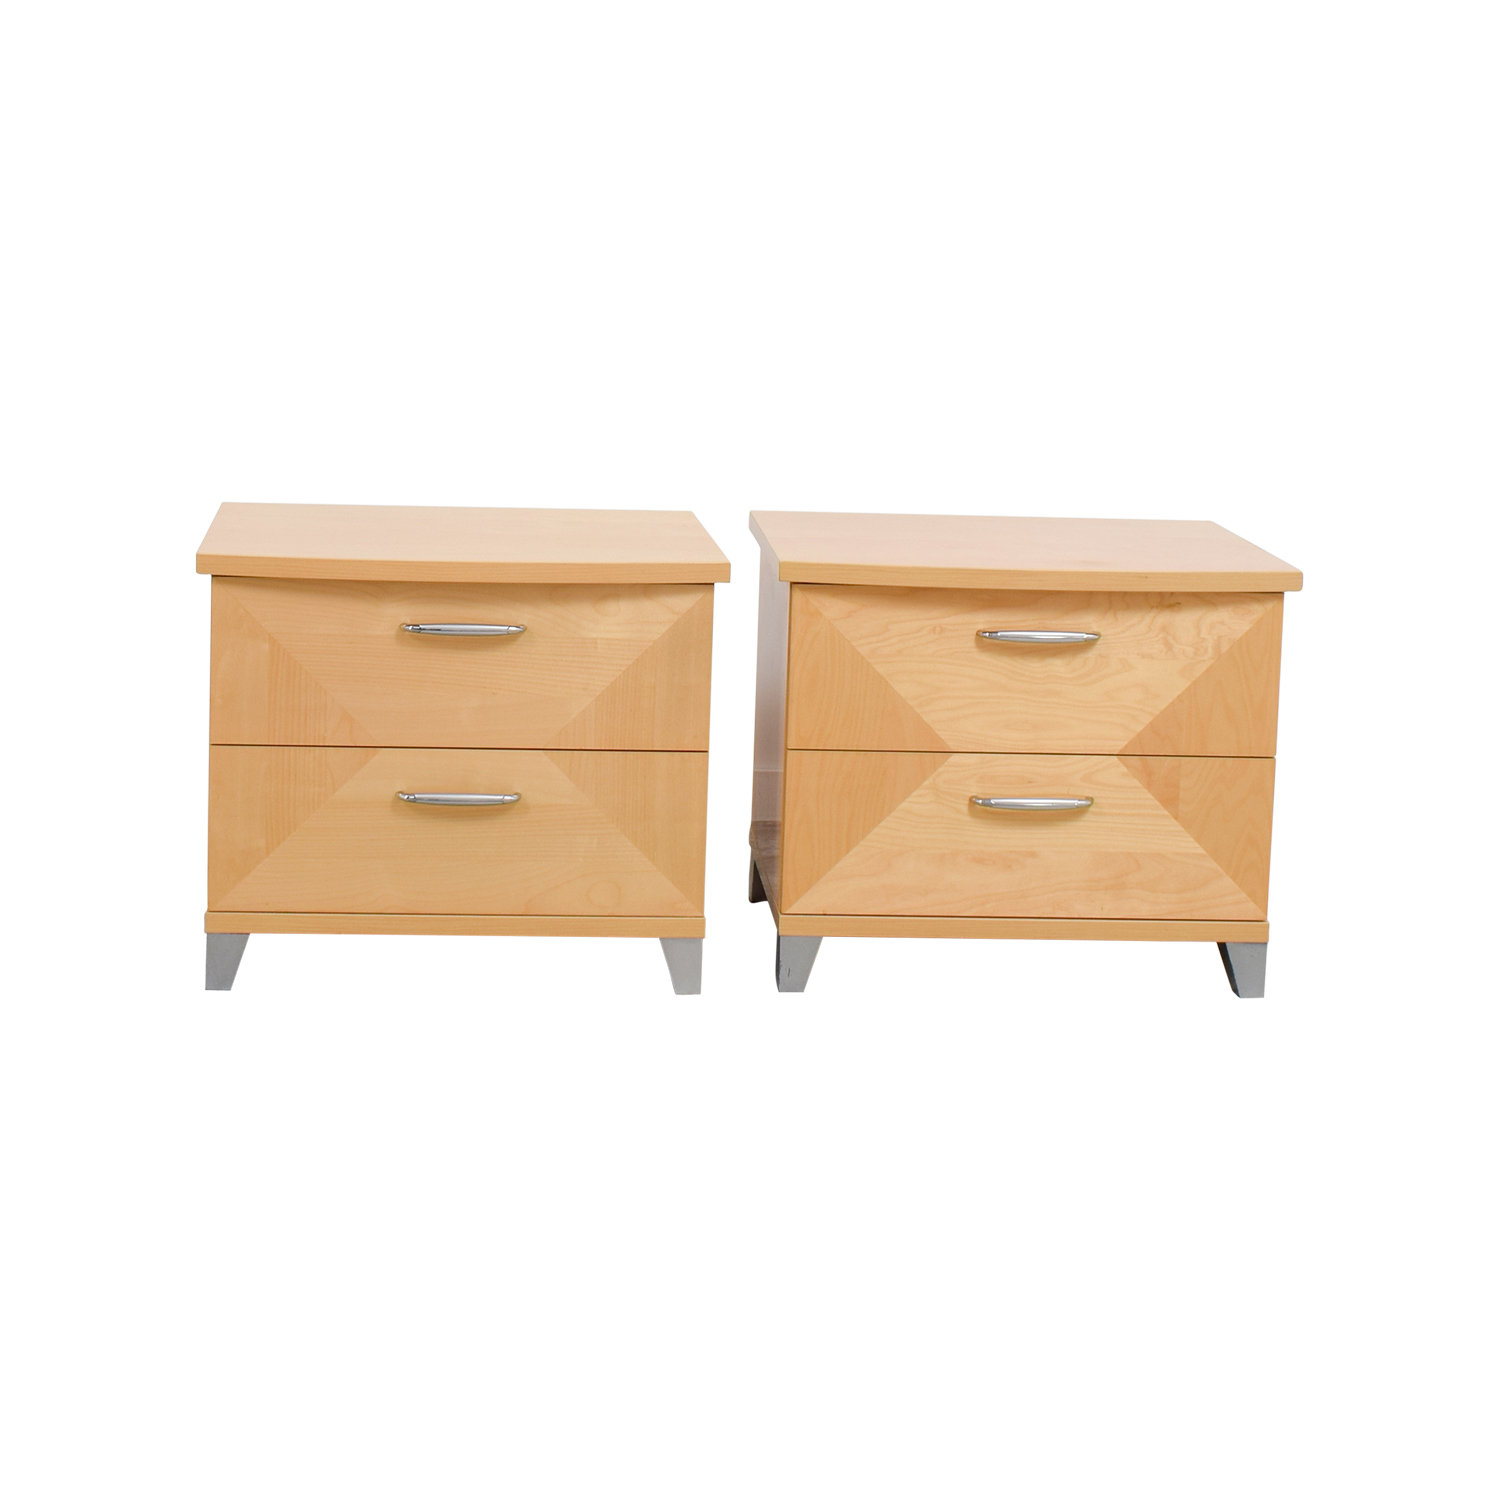 Natural Two-Drawer Night Stands dimensions